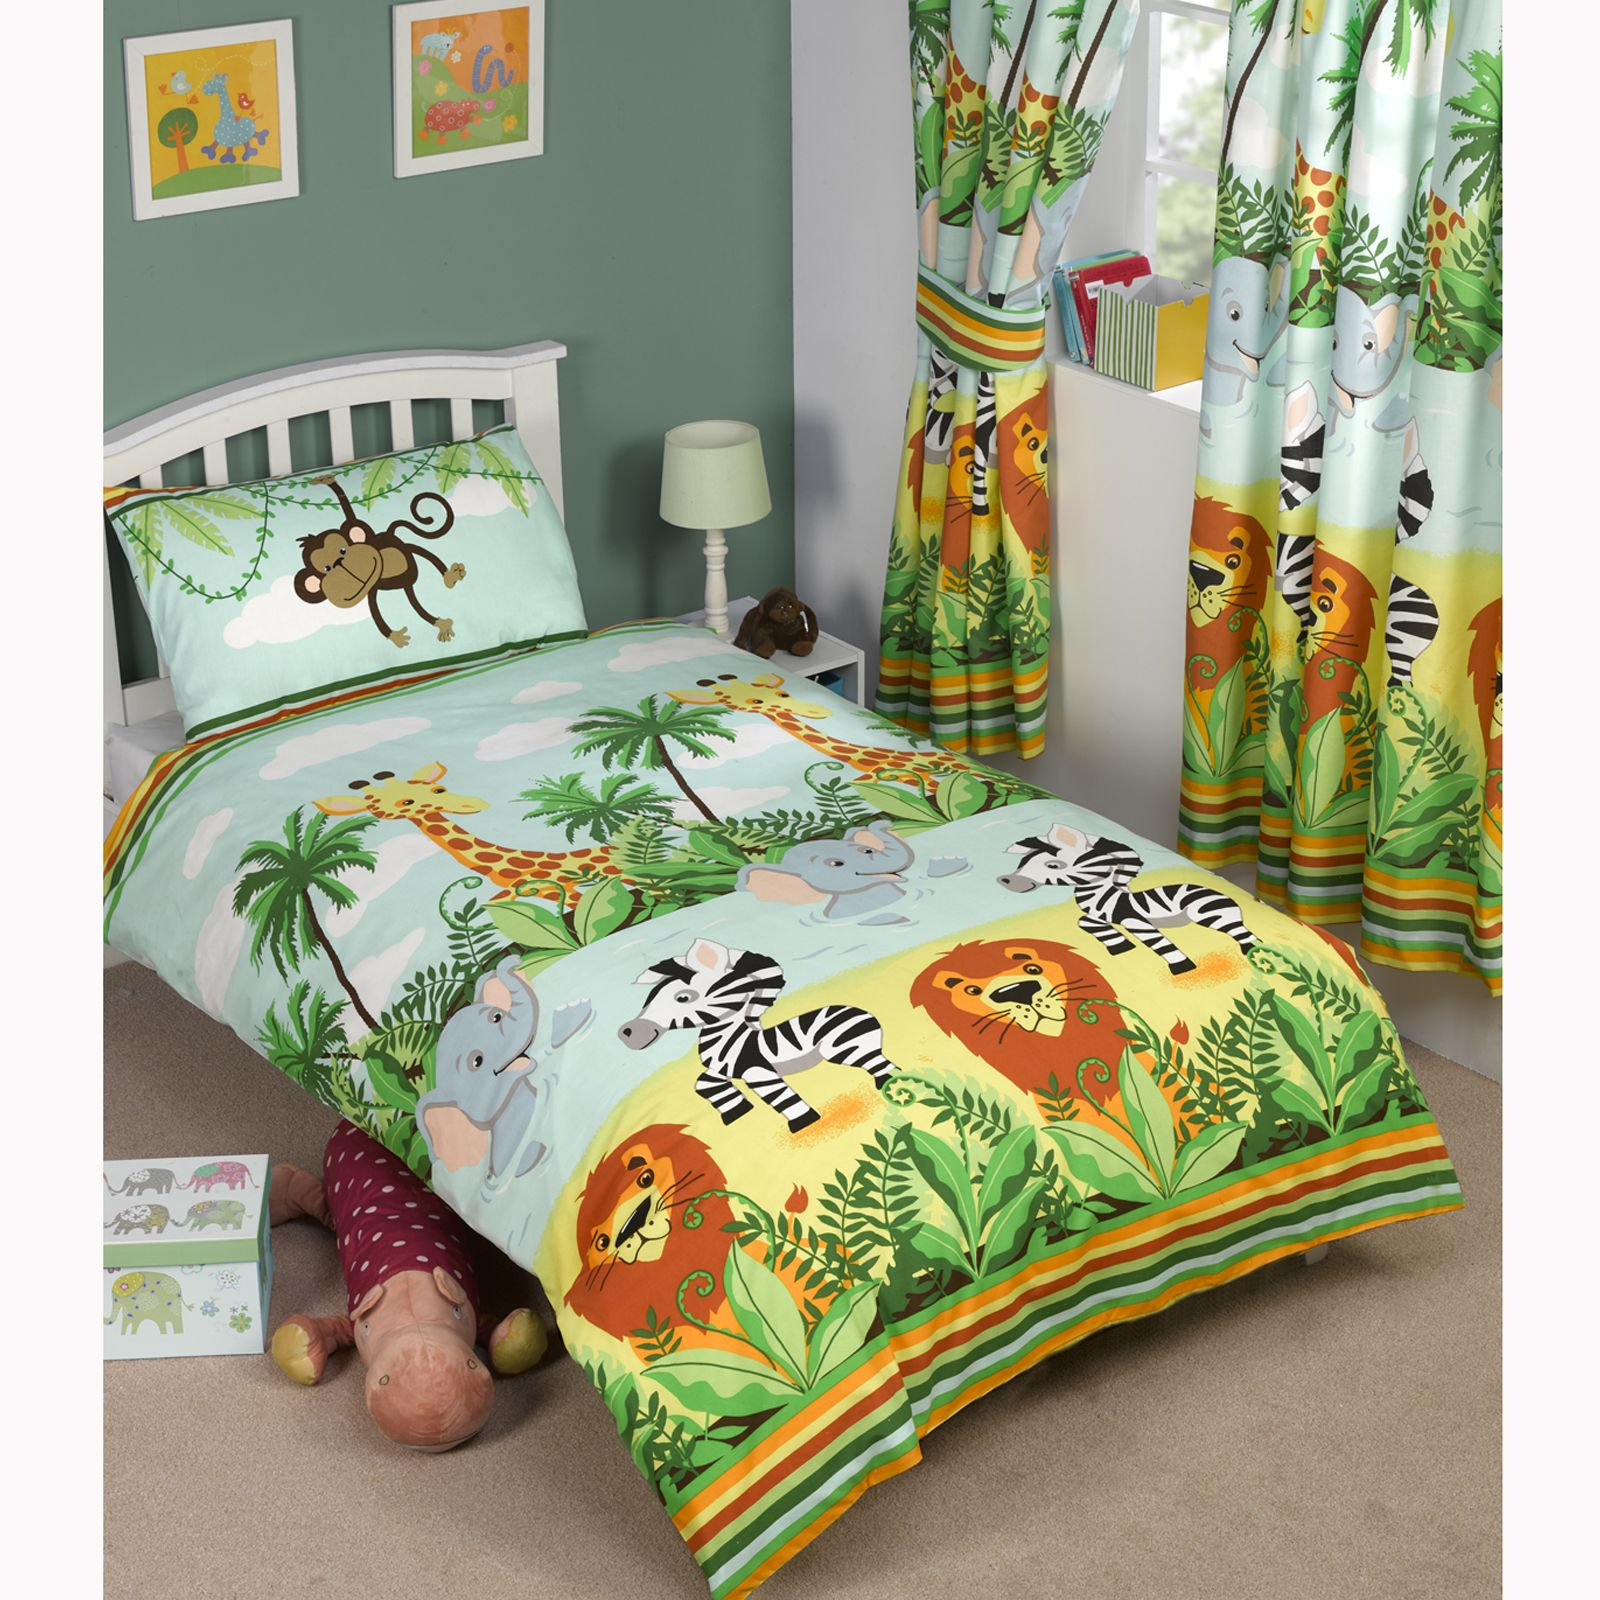 JUNGLE TASTIC ANIMAL THEMED BEDDING BEDROOM SINGLE TODDLER